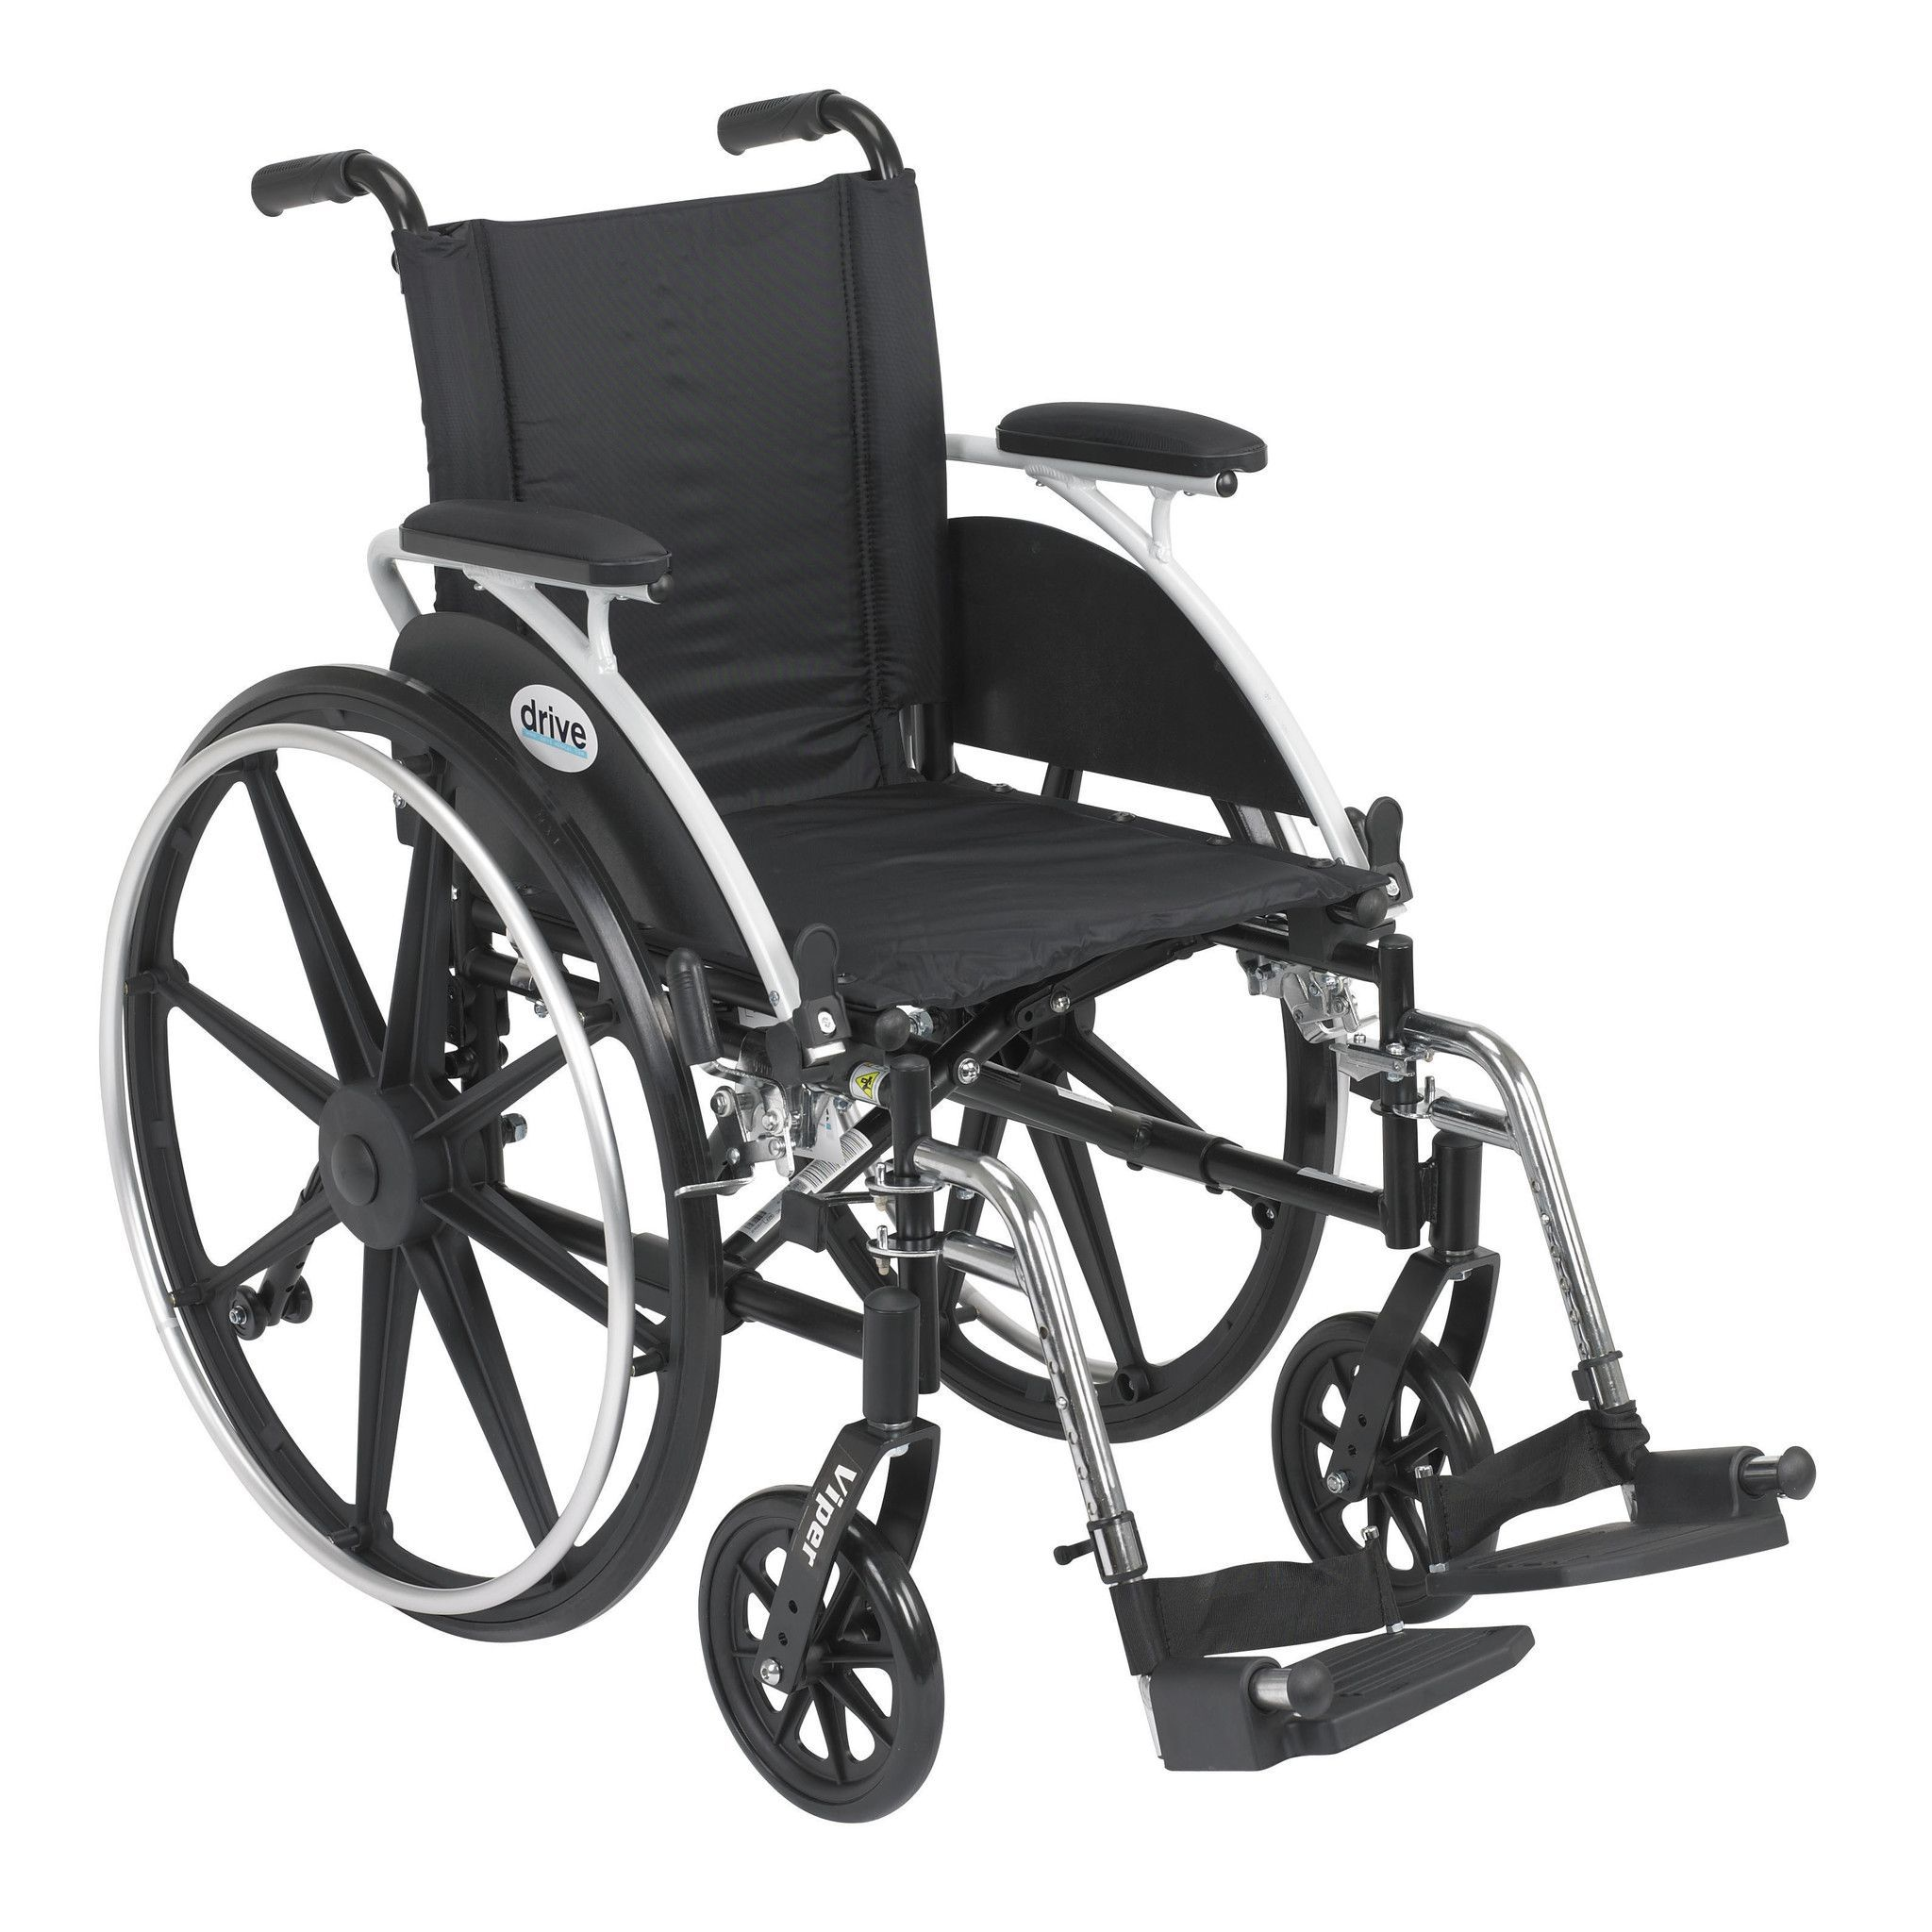 The Drive Medical Viper is a versatile wheelchair right